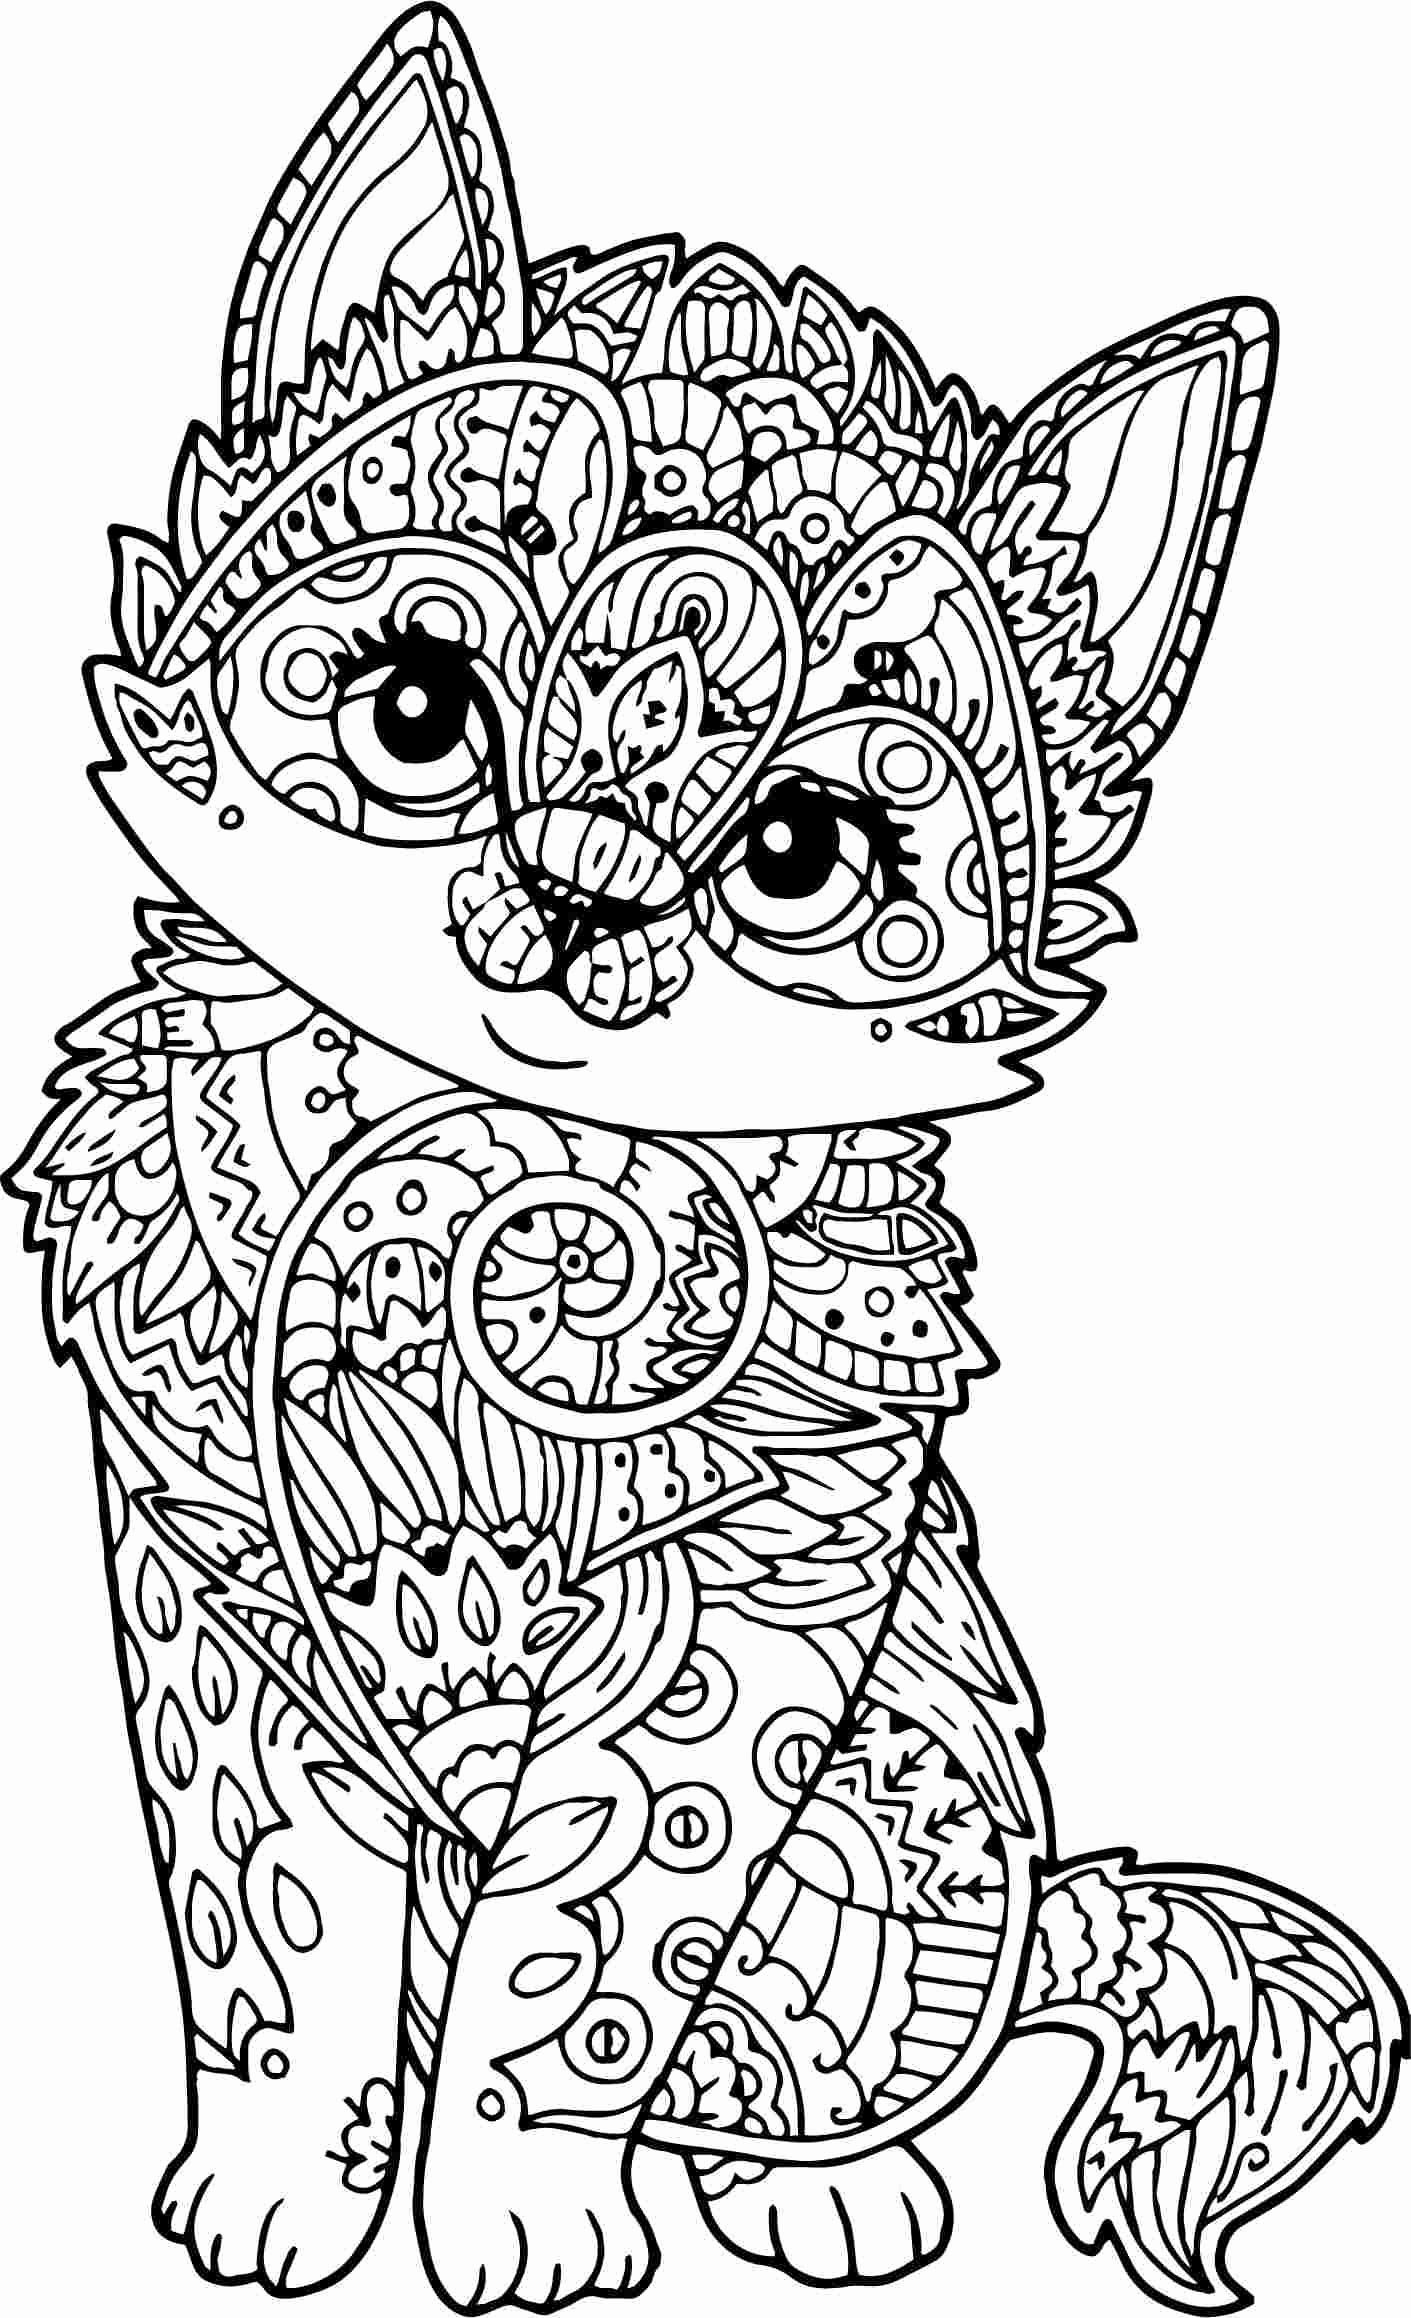 Kitty Cat And Rabbit Coloring Pages For Kids Mandala Coloring Pages Puppy Coloring Pages Cat Coloring Book